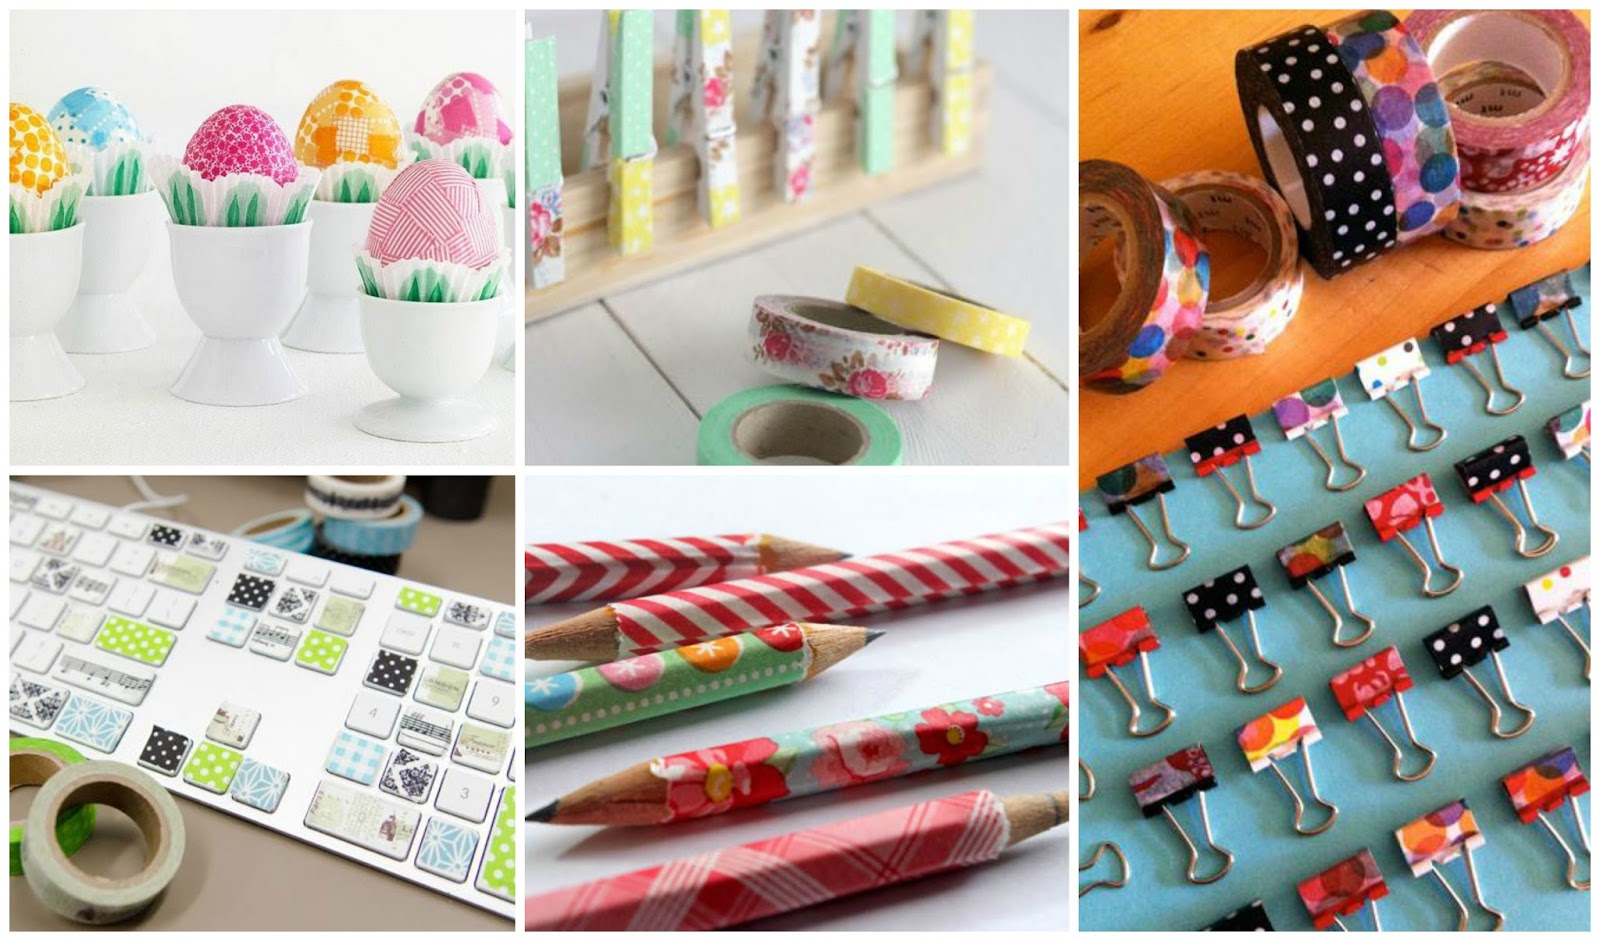 Ideas Para Decorar Con Washi Tape La Mar De Scrap Lmdi 20 Washi Tape